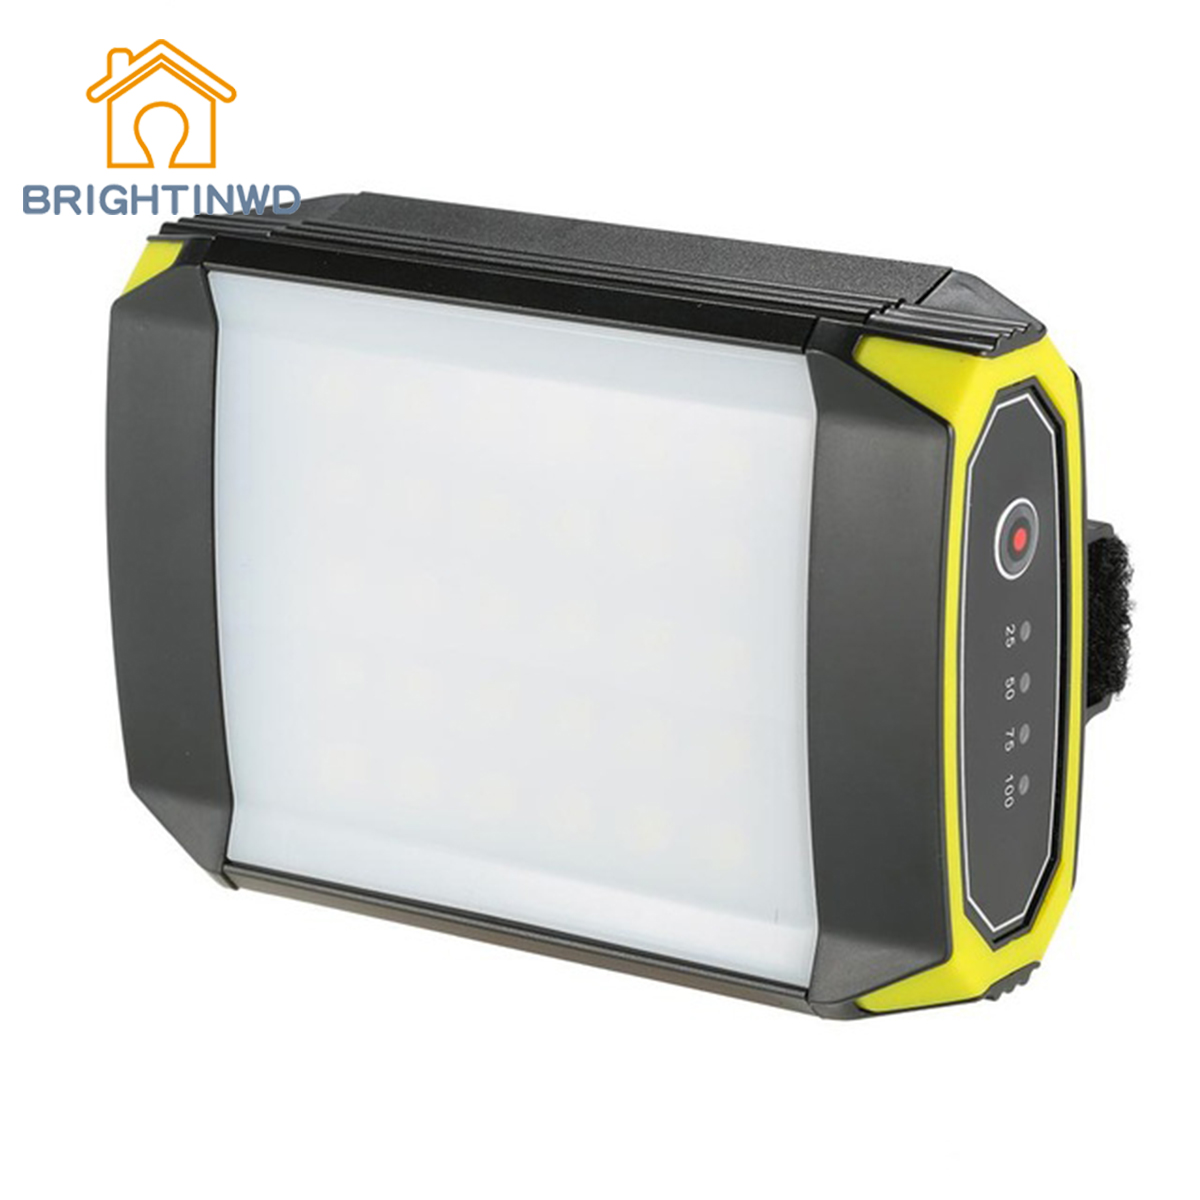 Flasher Mobile Power Bank Flashlight USB Port Camping Tent Light Outdoor Portable Hanging Lamp 30 LEDS Lantern Camping Light one light frosted glass antique rust hanging lantern